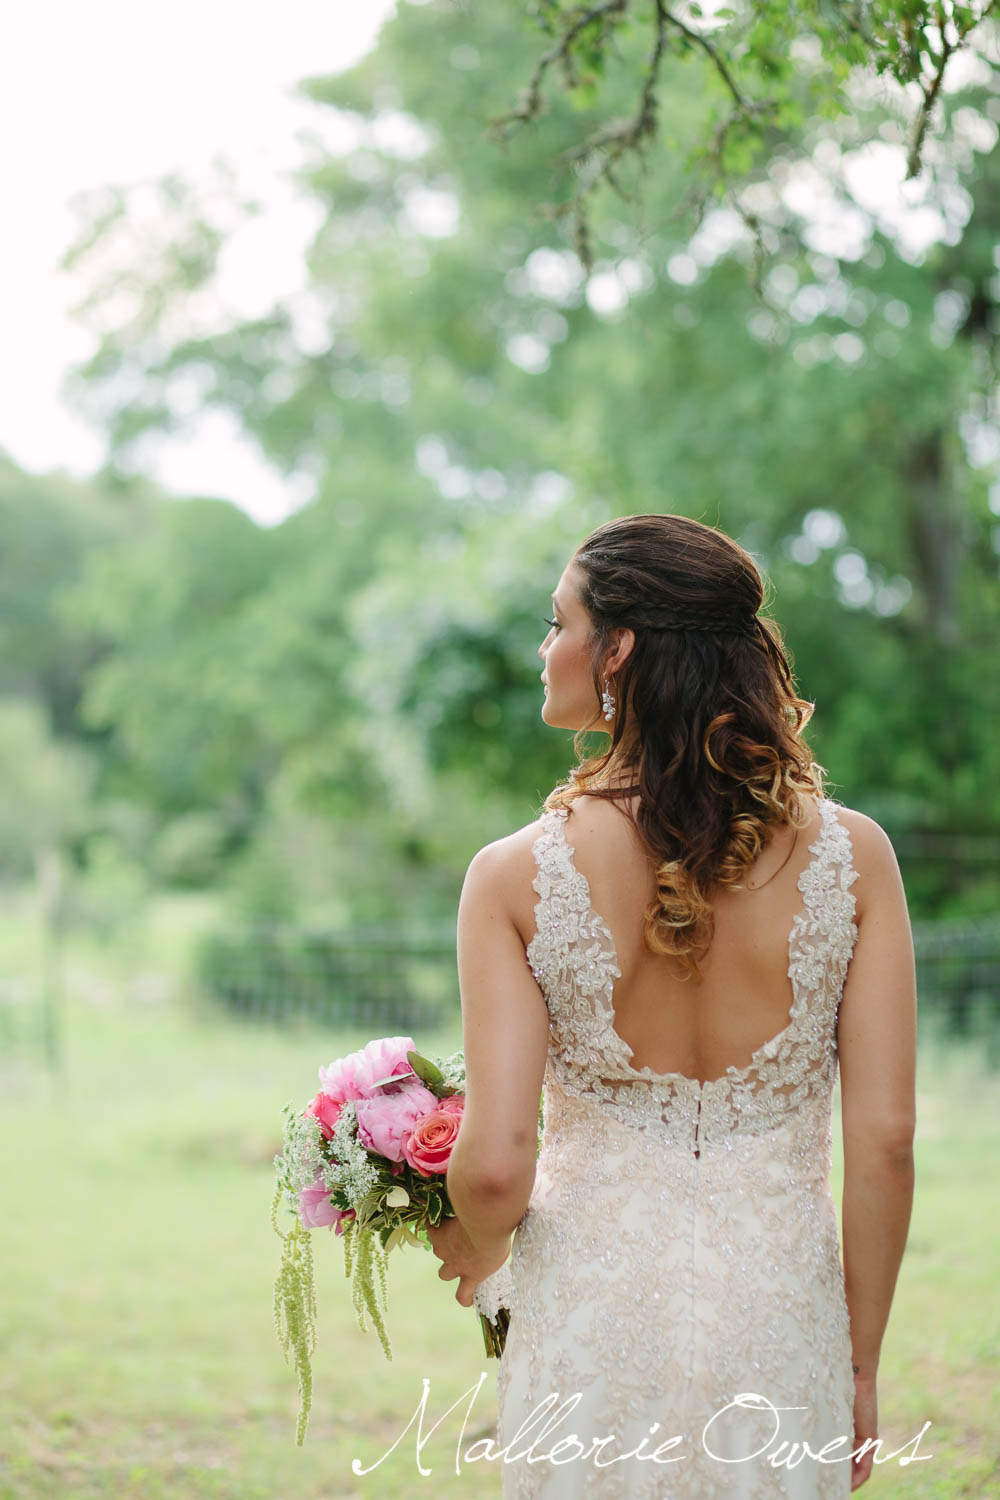 Austin Bridal Session | MALLORIE OWENS